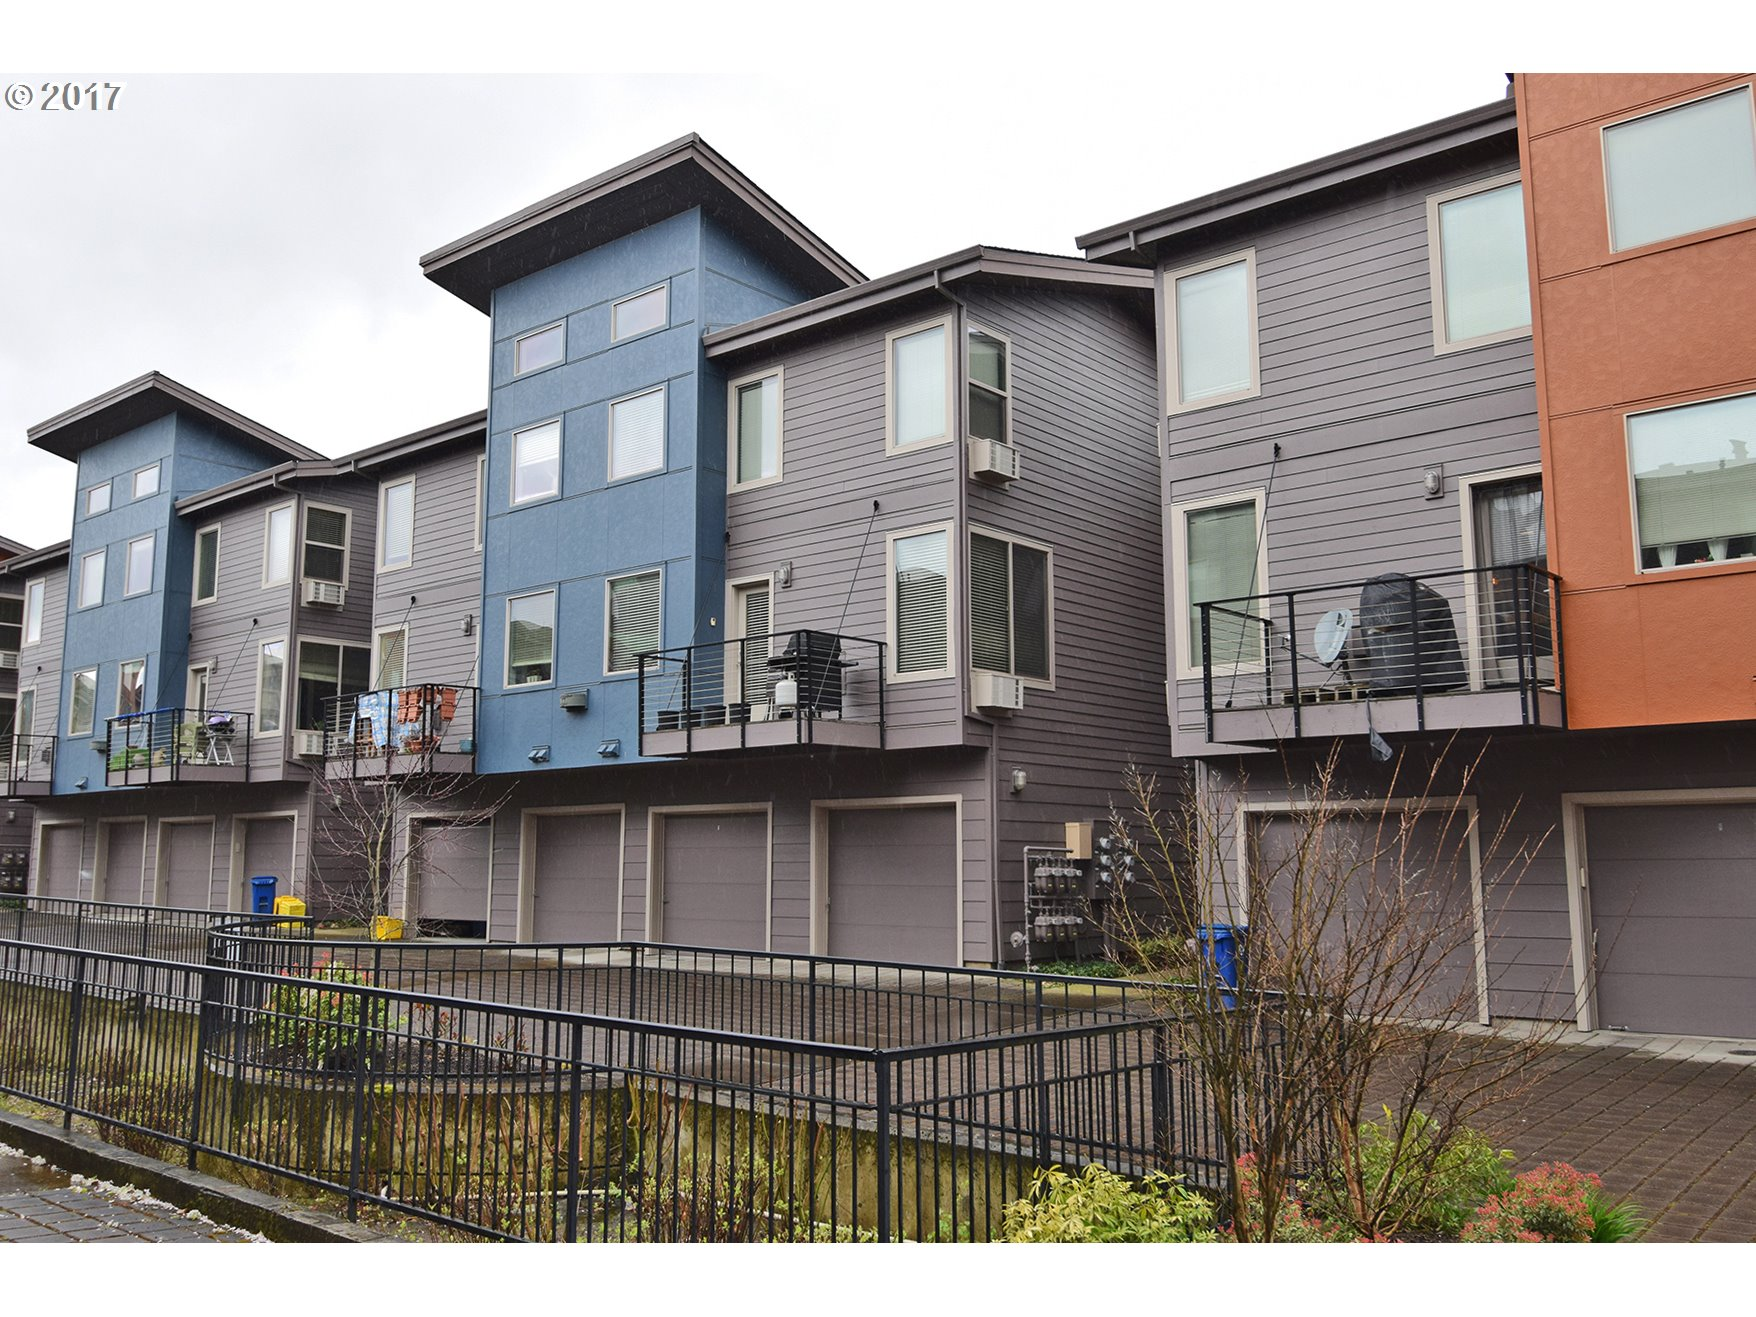 8064 N BURLINGTON AVE 13-5 Portland, OR 97203 - MLS #: 17636138